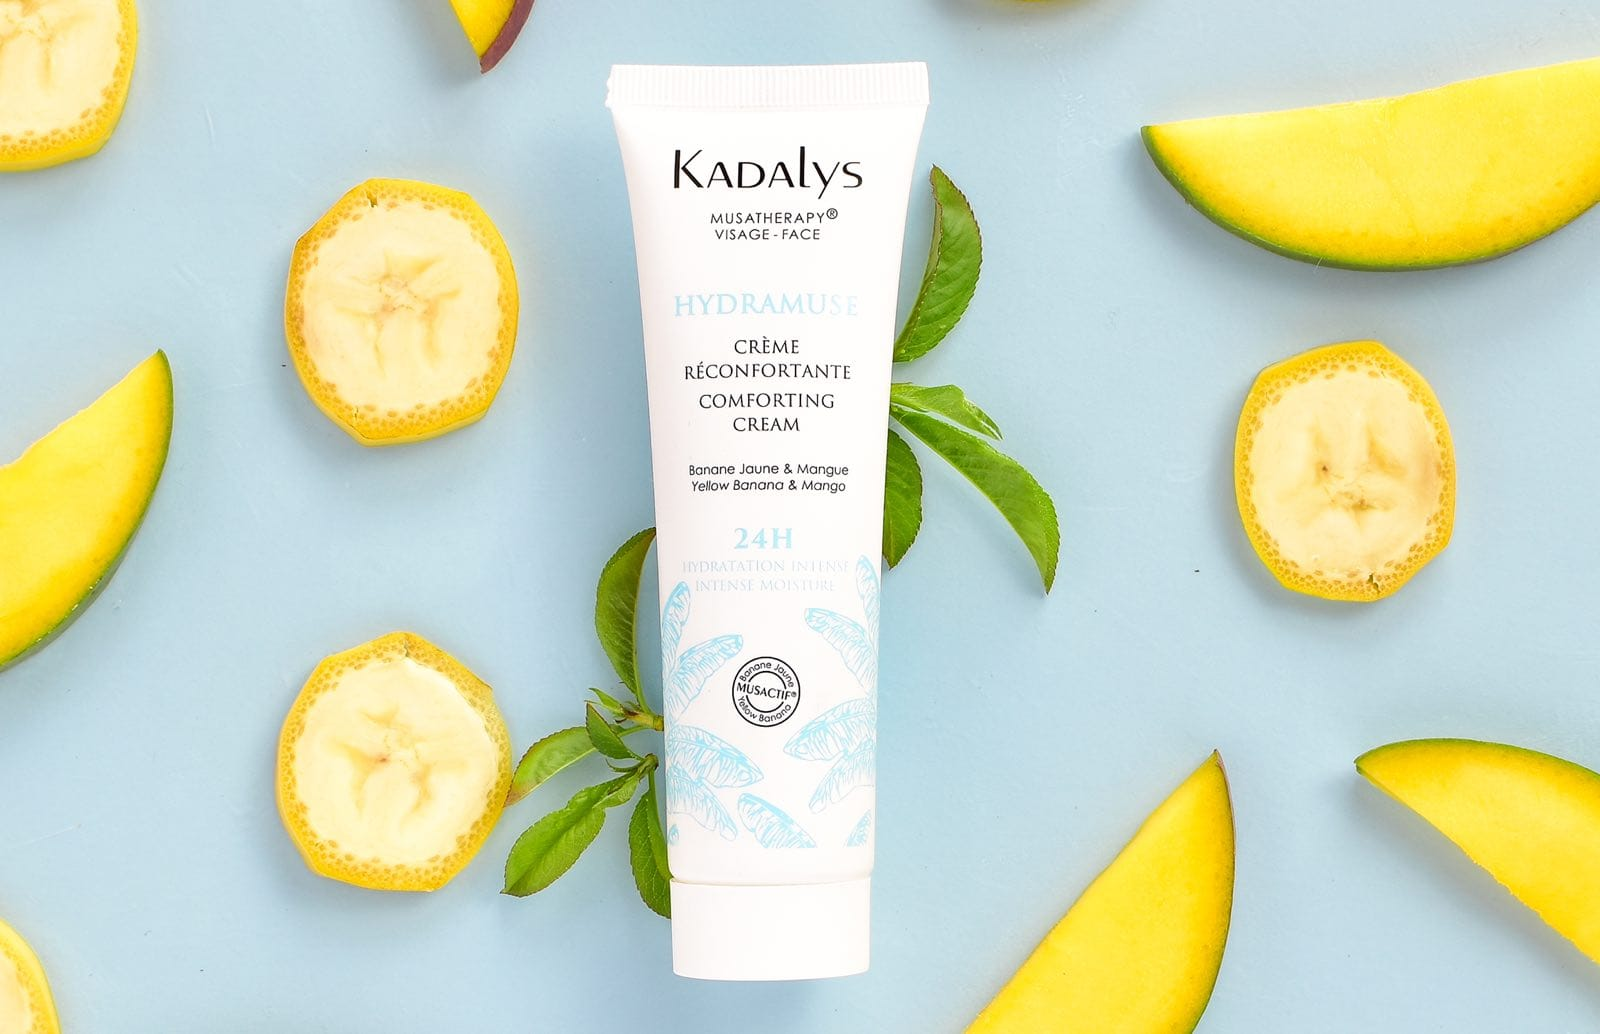 Kadalys Musatherapy Face Comforting Cream OuiPlease OuiBlog